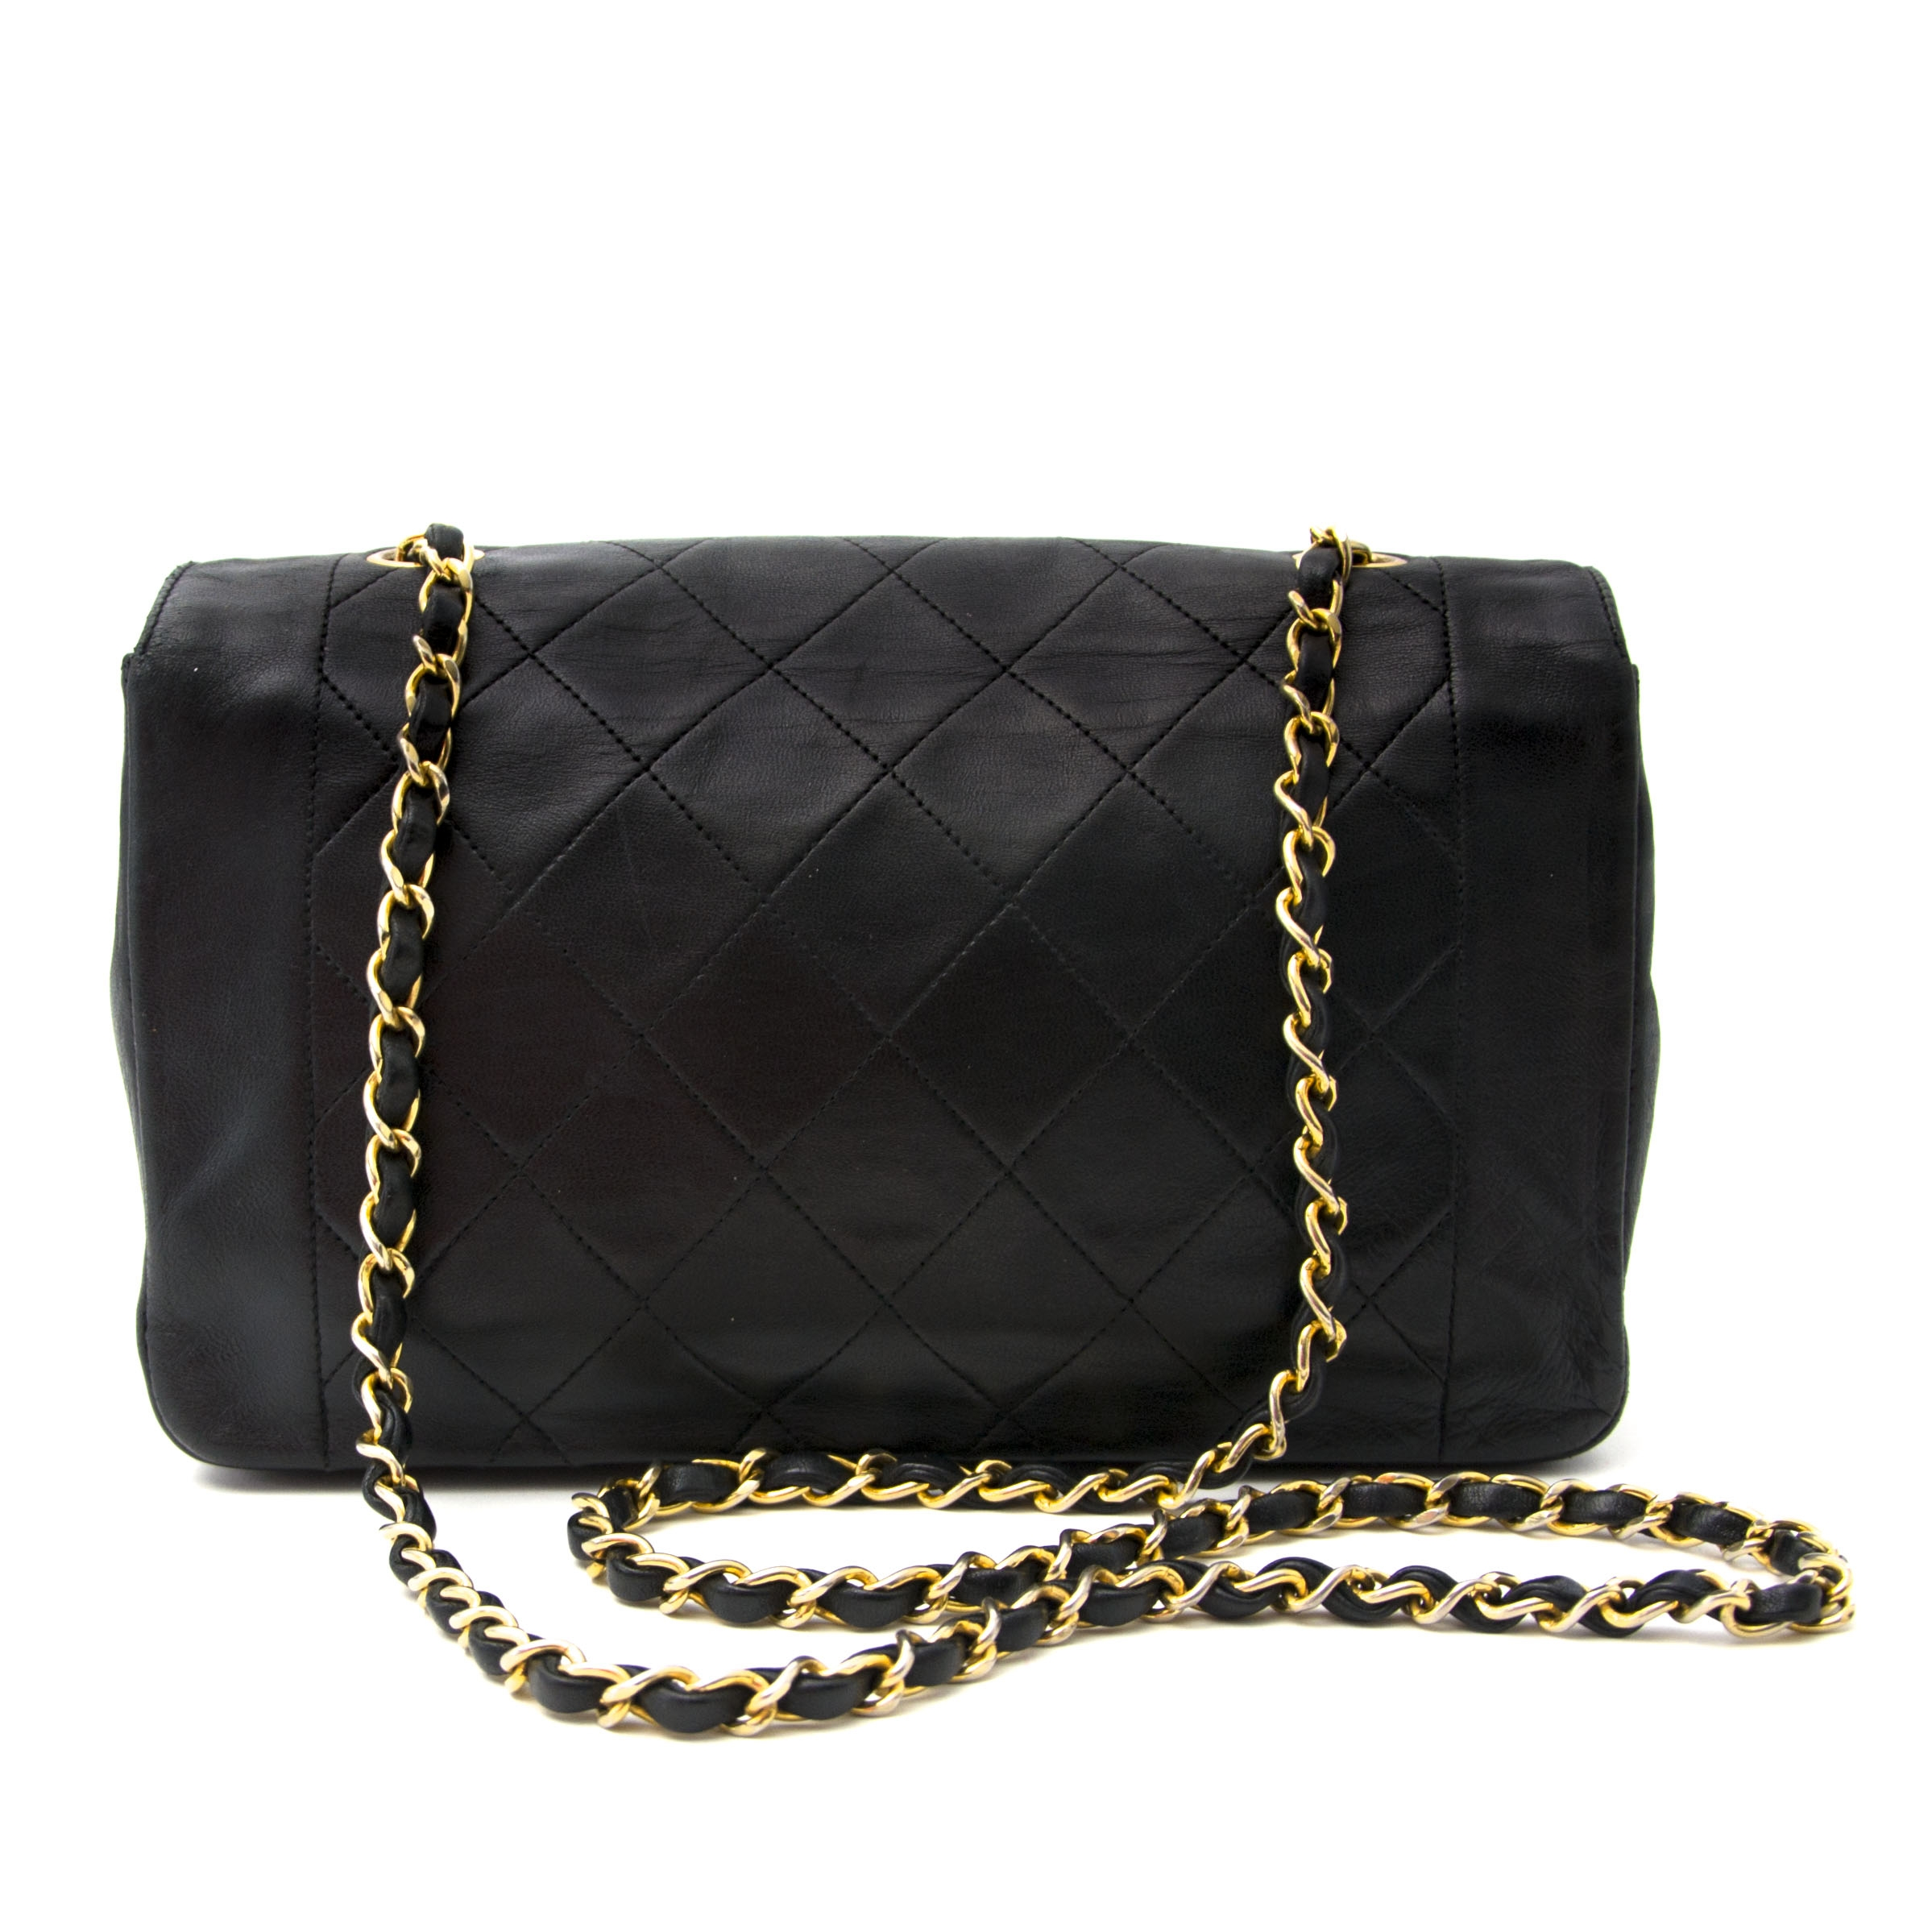 3c1f9f24365e ... Chanel Black Leather Flap Bag Buy authentic designer Chanel secondhand  bags at Labellov at the best